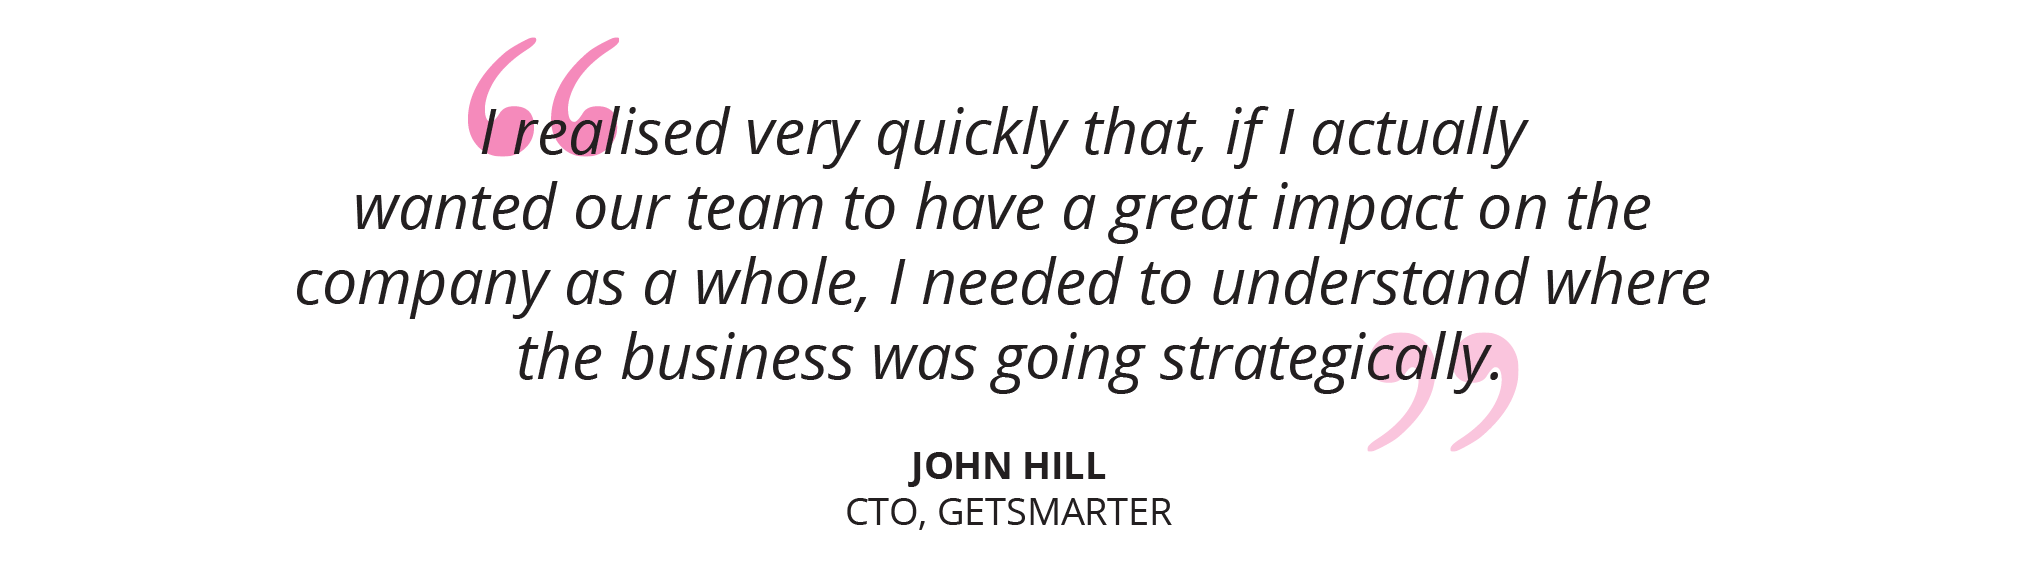 cto chief technology officer quote john hill 1 getsmarter online short courses